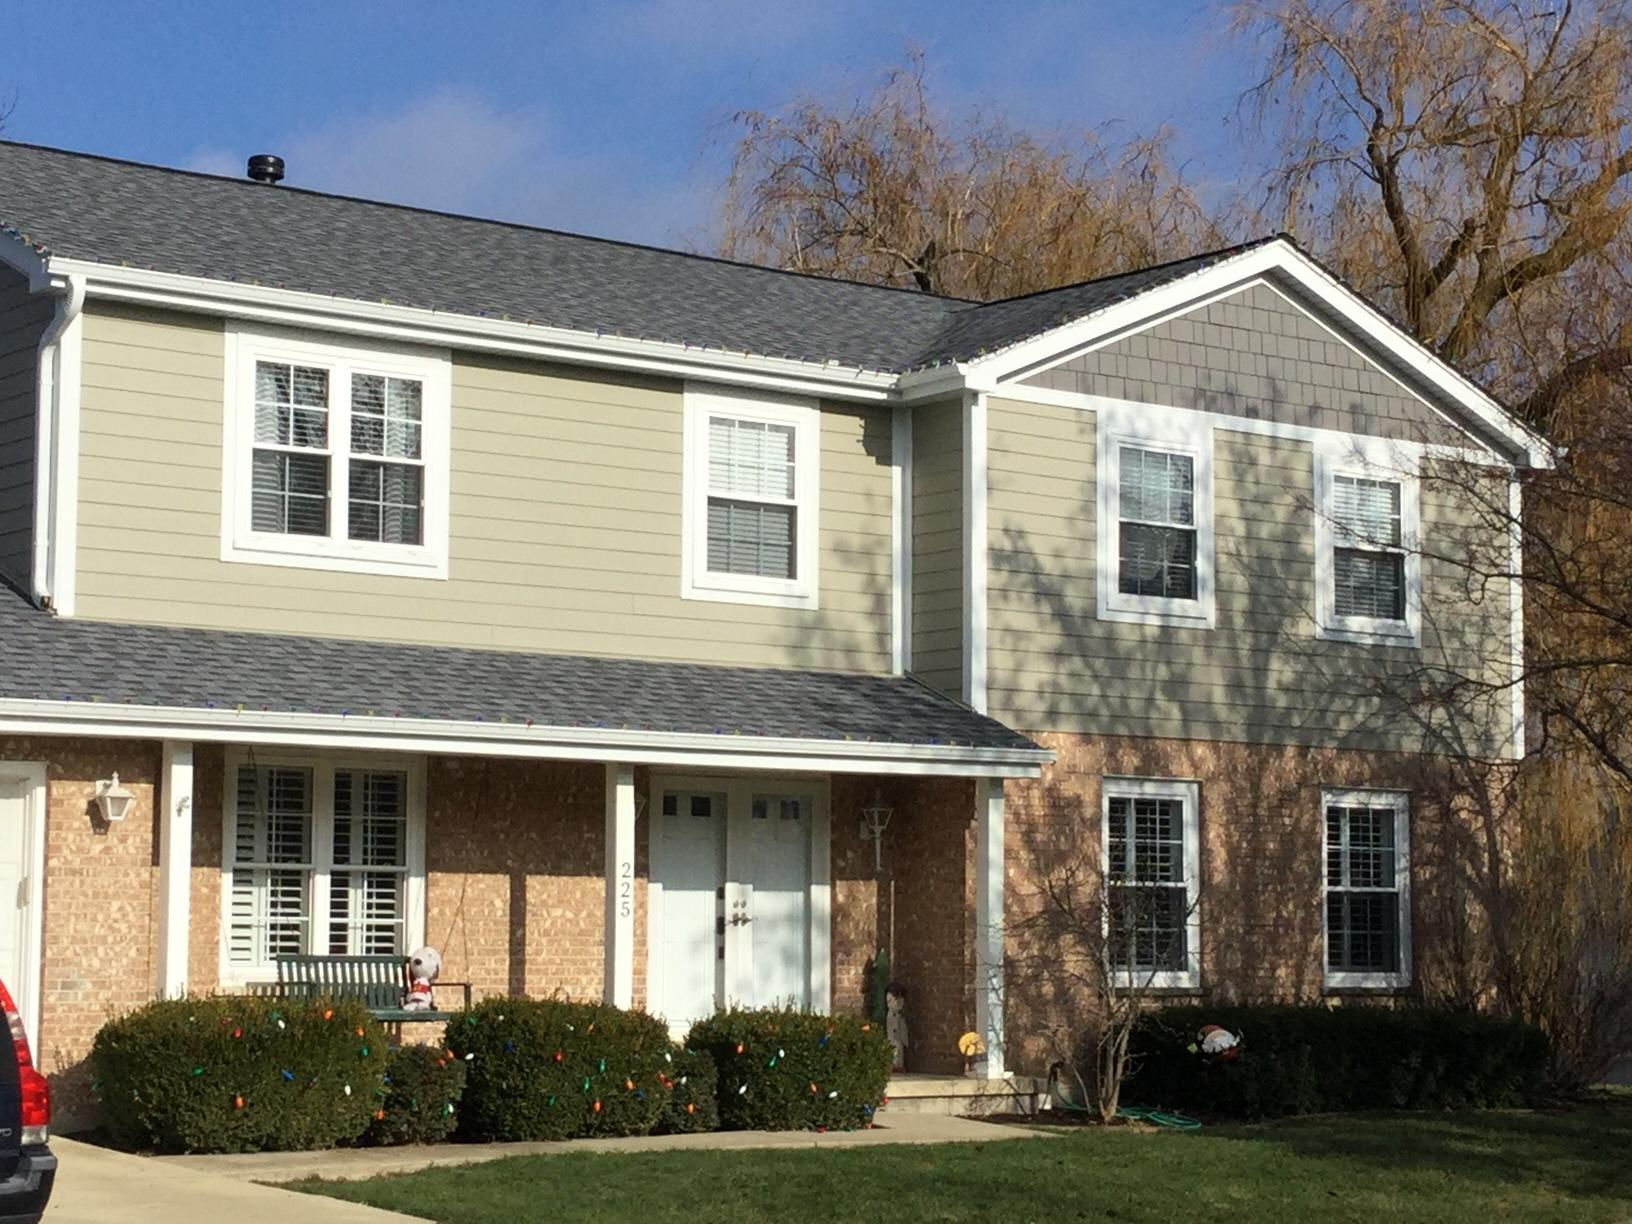 Siding, Roofing, Soffit, Fascia, & Gutter Project in Frankfort IL